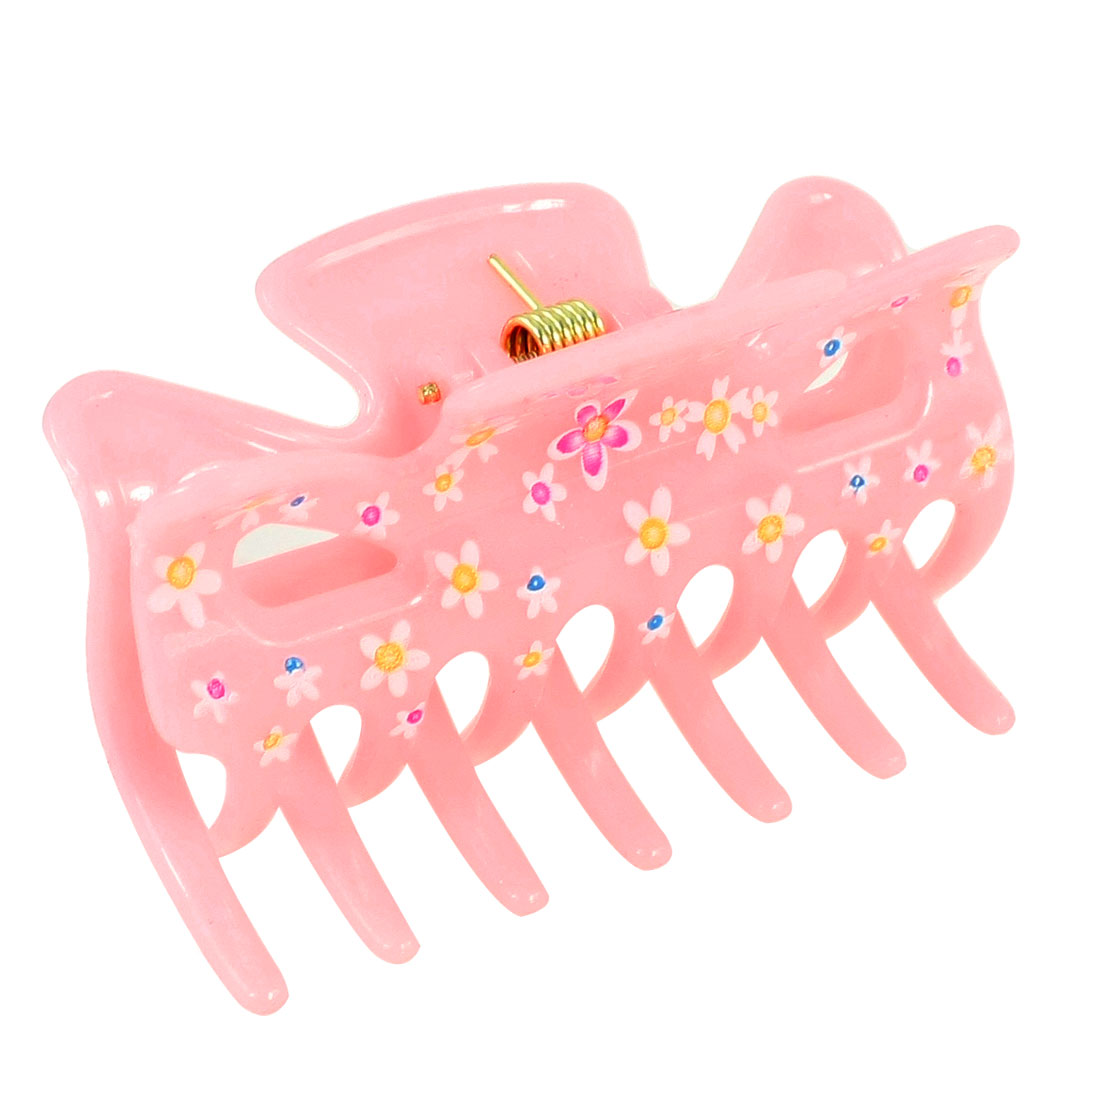 "Girls Light Pink Floral Print Plastic Barrette Hair Clip Claw Clamp 2.7"" Long"